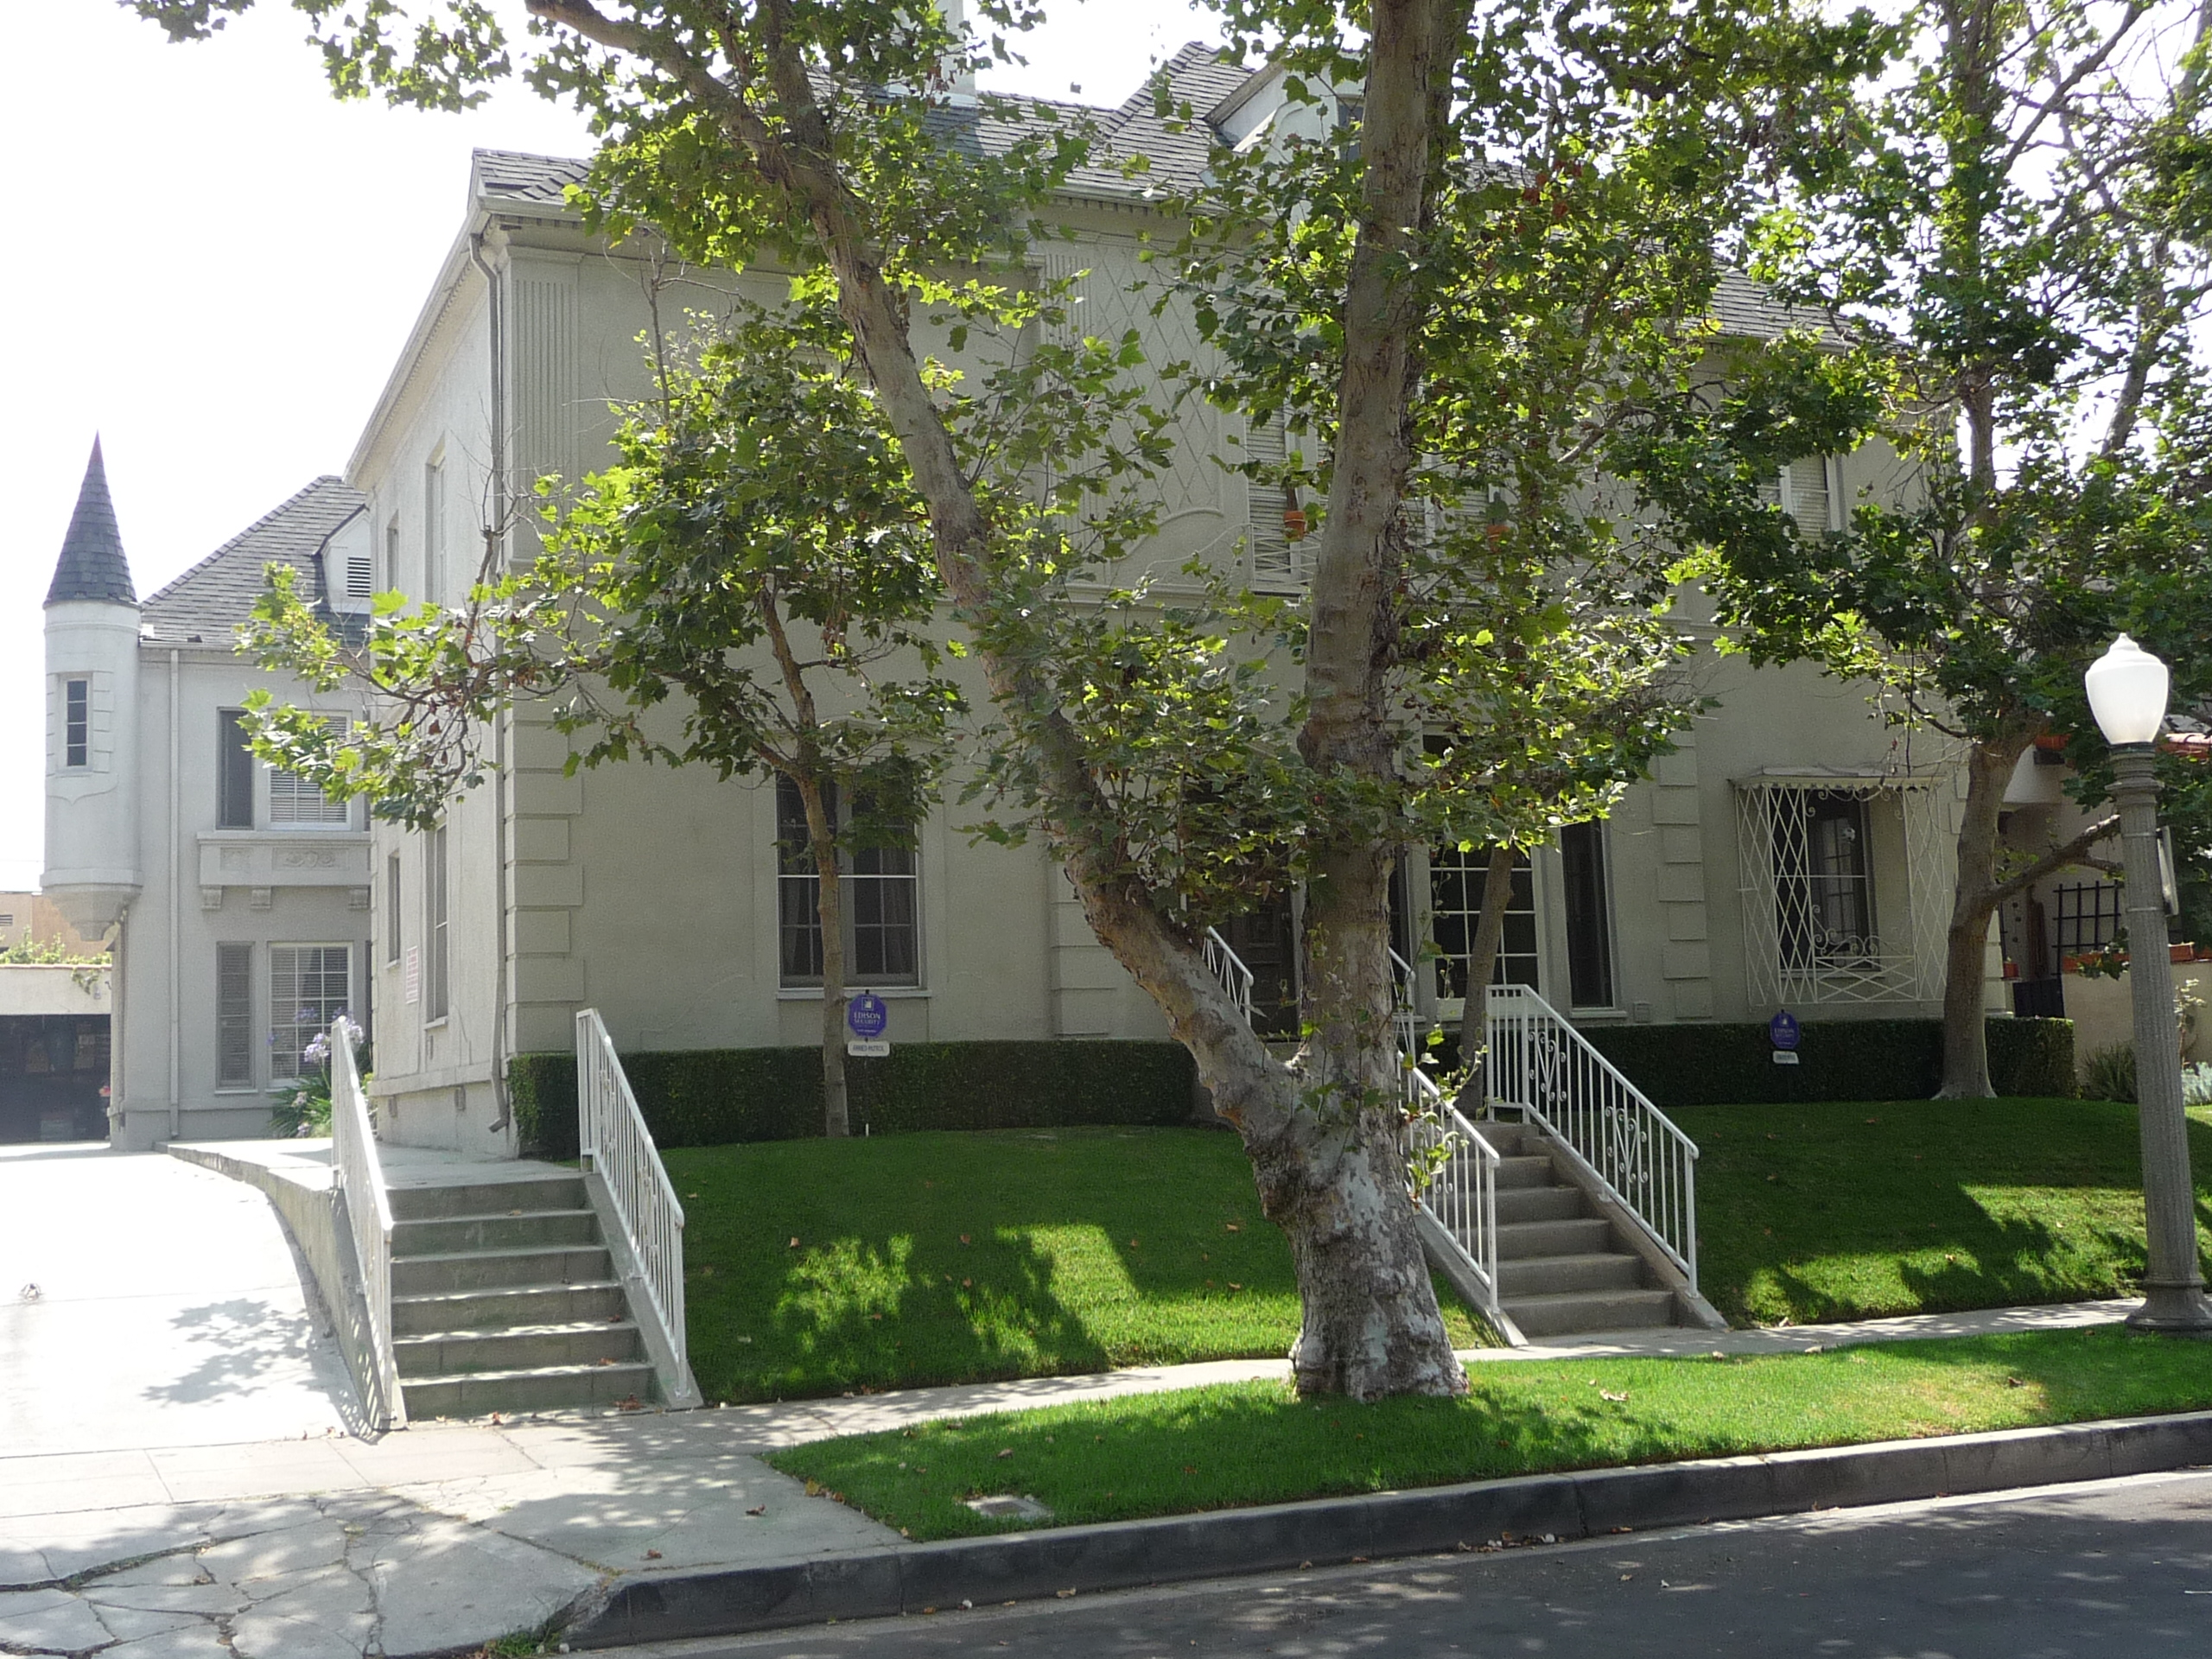 430 N SYCAMORE AVE - PHOTO